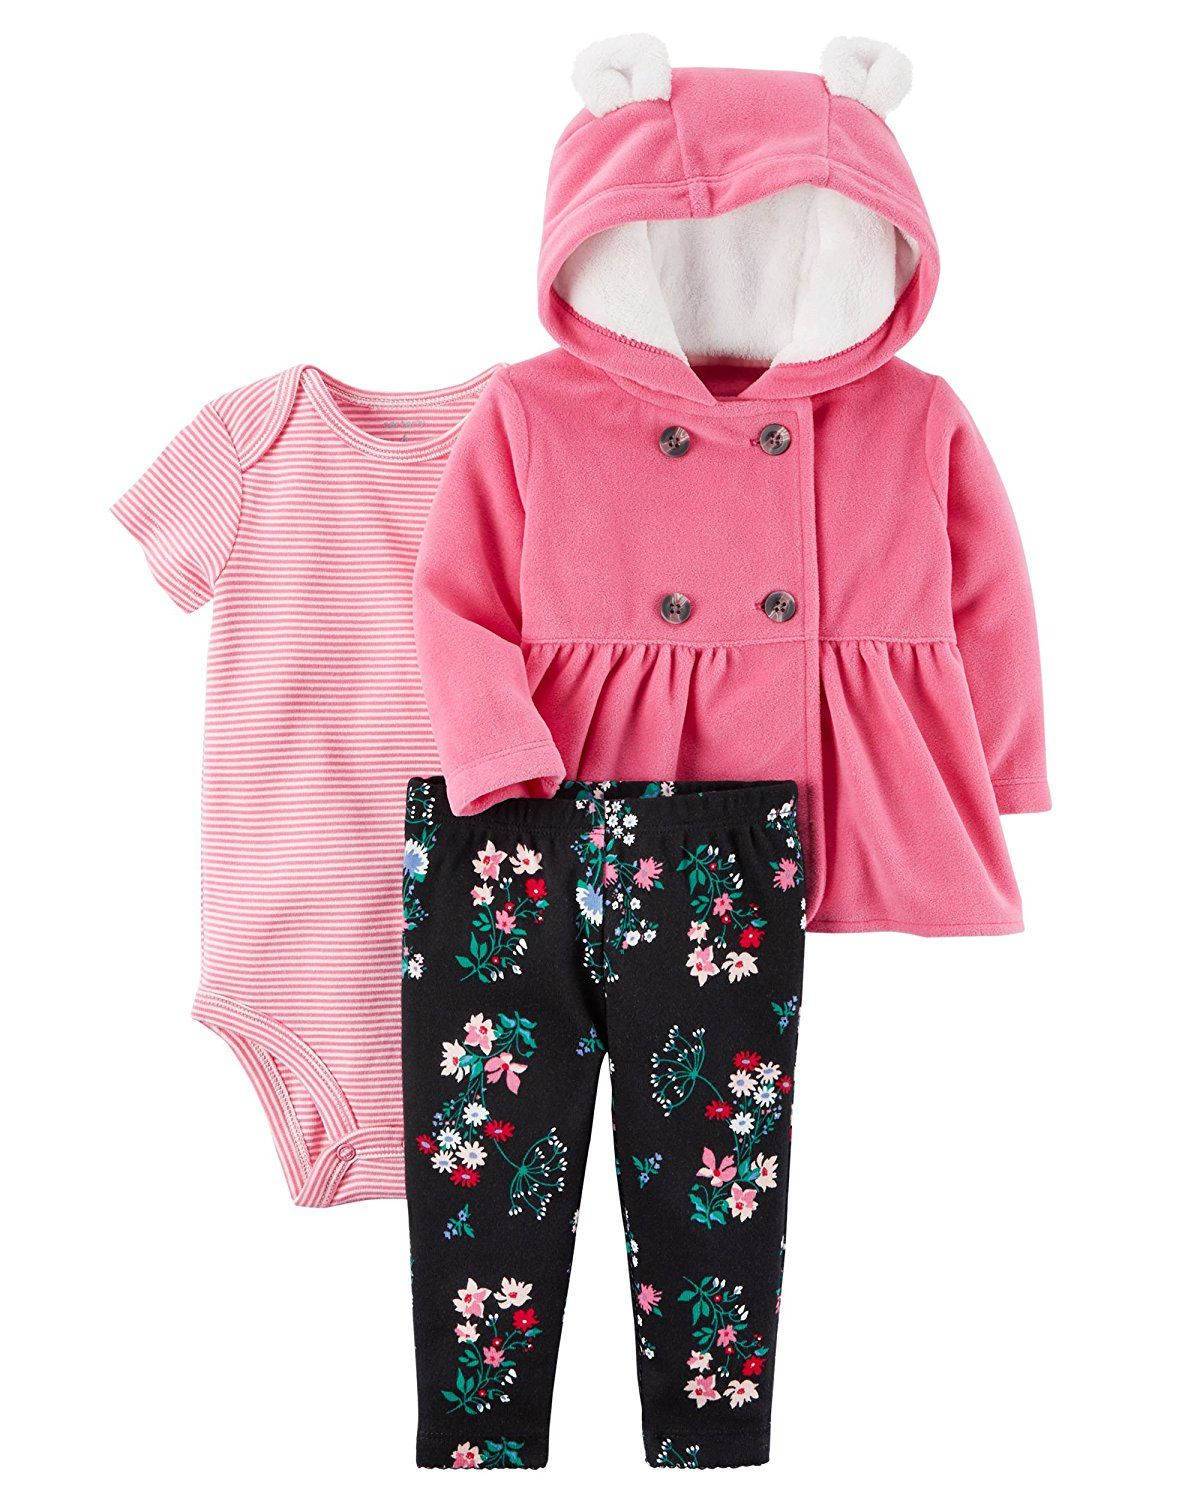 61a6e0b800db Amazon.com  Carter s Baby Girls  Cardigan Sets 121g778  Clothing ...